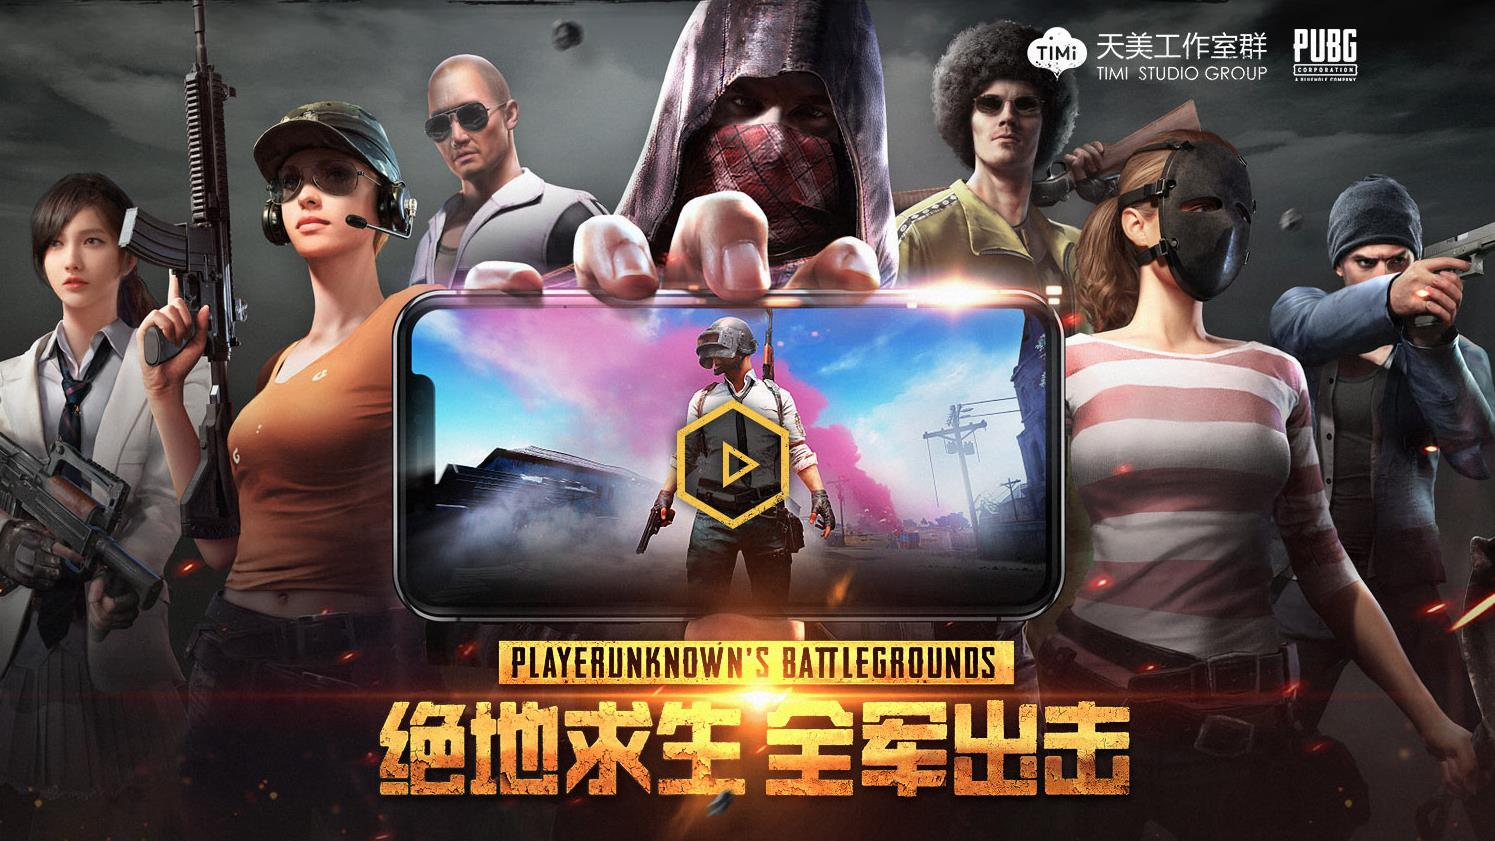 player-unknowns-battlegrounds-mobile-android-ios Primeiras Imagens de Playerunknown's Battlegrounds Mobile (Android e iOS)